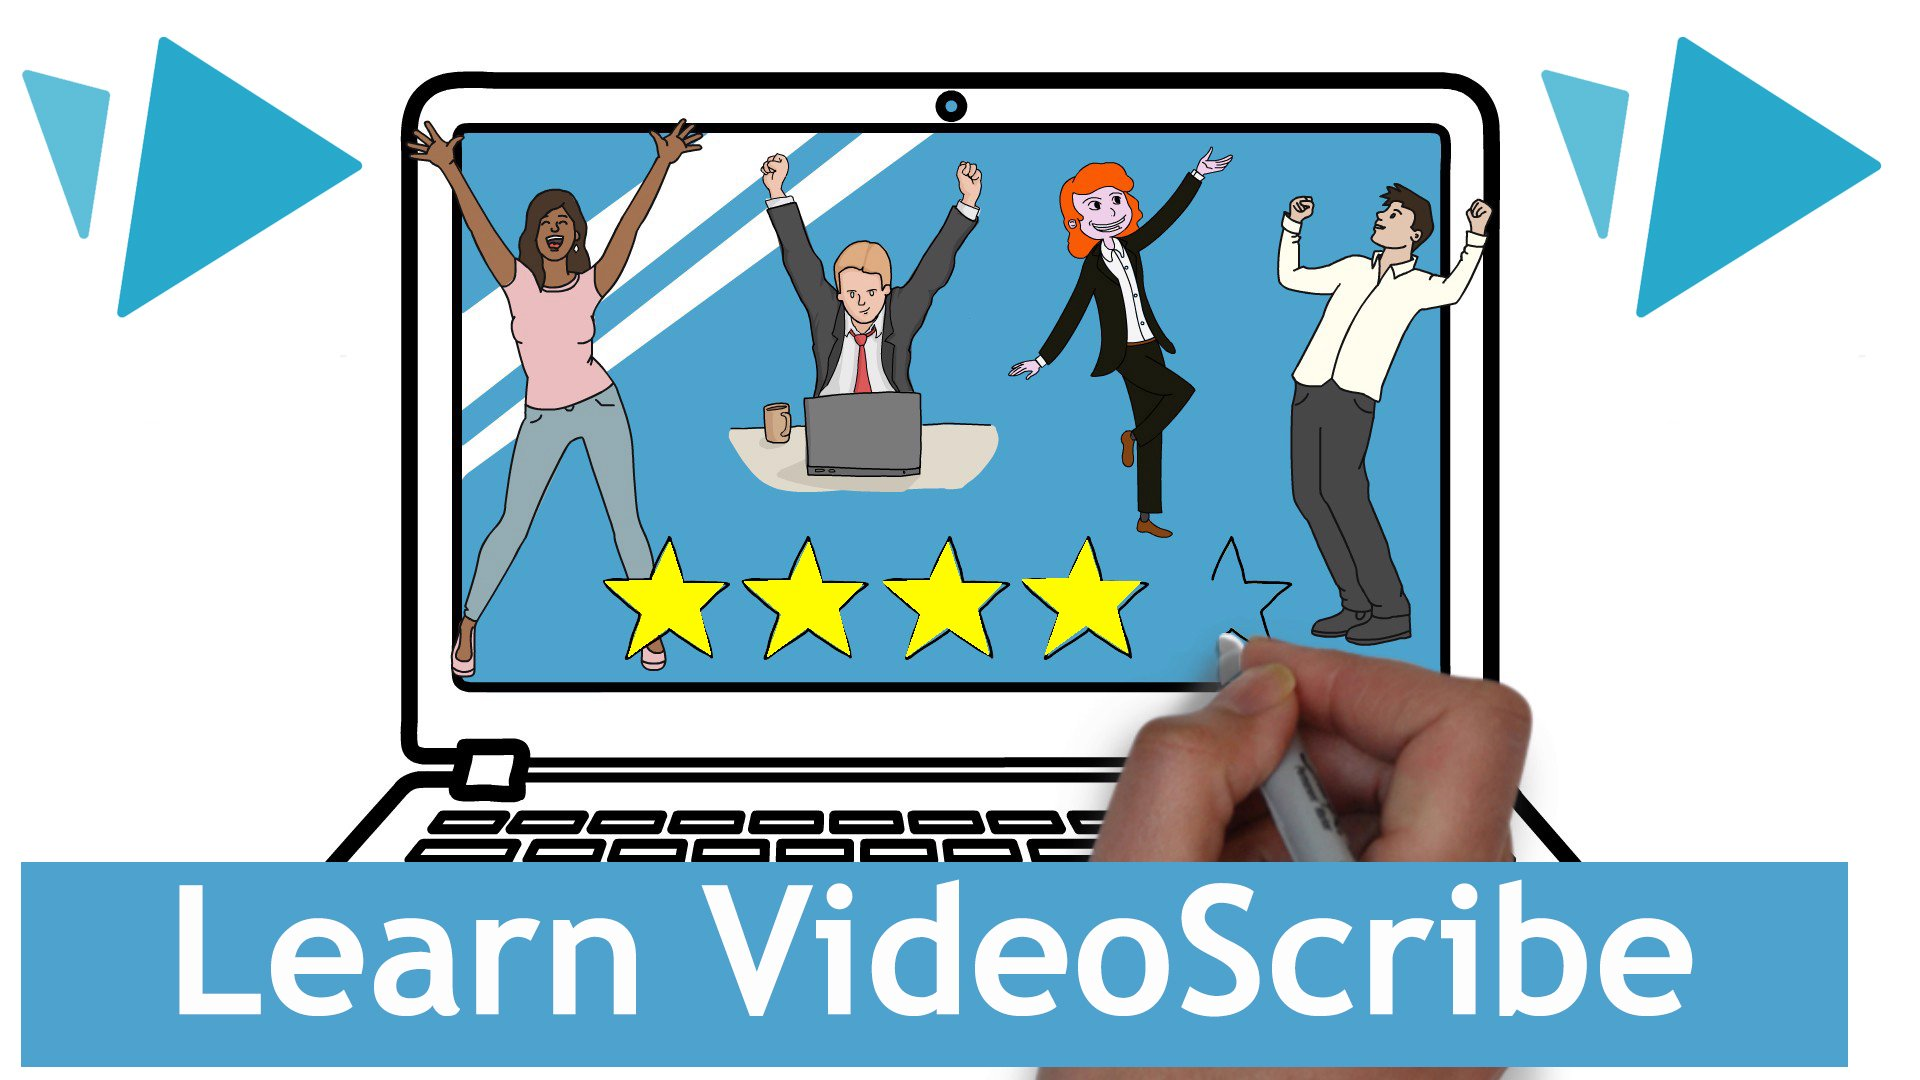 Learn VideoScribe 2019 Version V3 3 Whiteboard Animations in Under 1